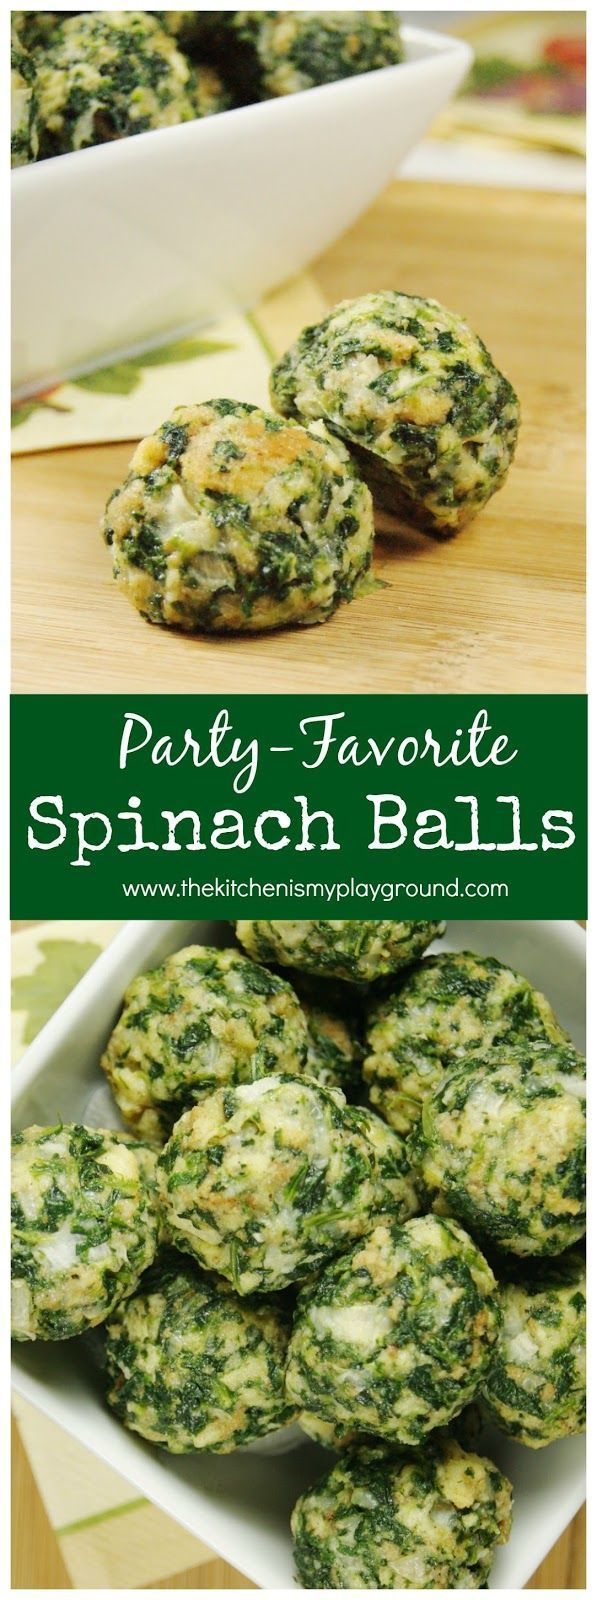 Always a crowd-pleasing favorite nibble. With a combination of spinach and stuffing mix, who can resist?